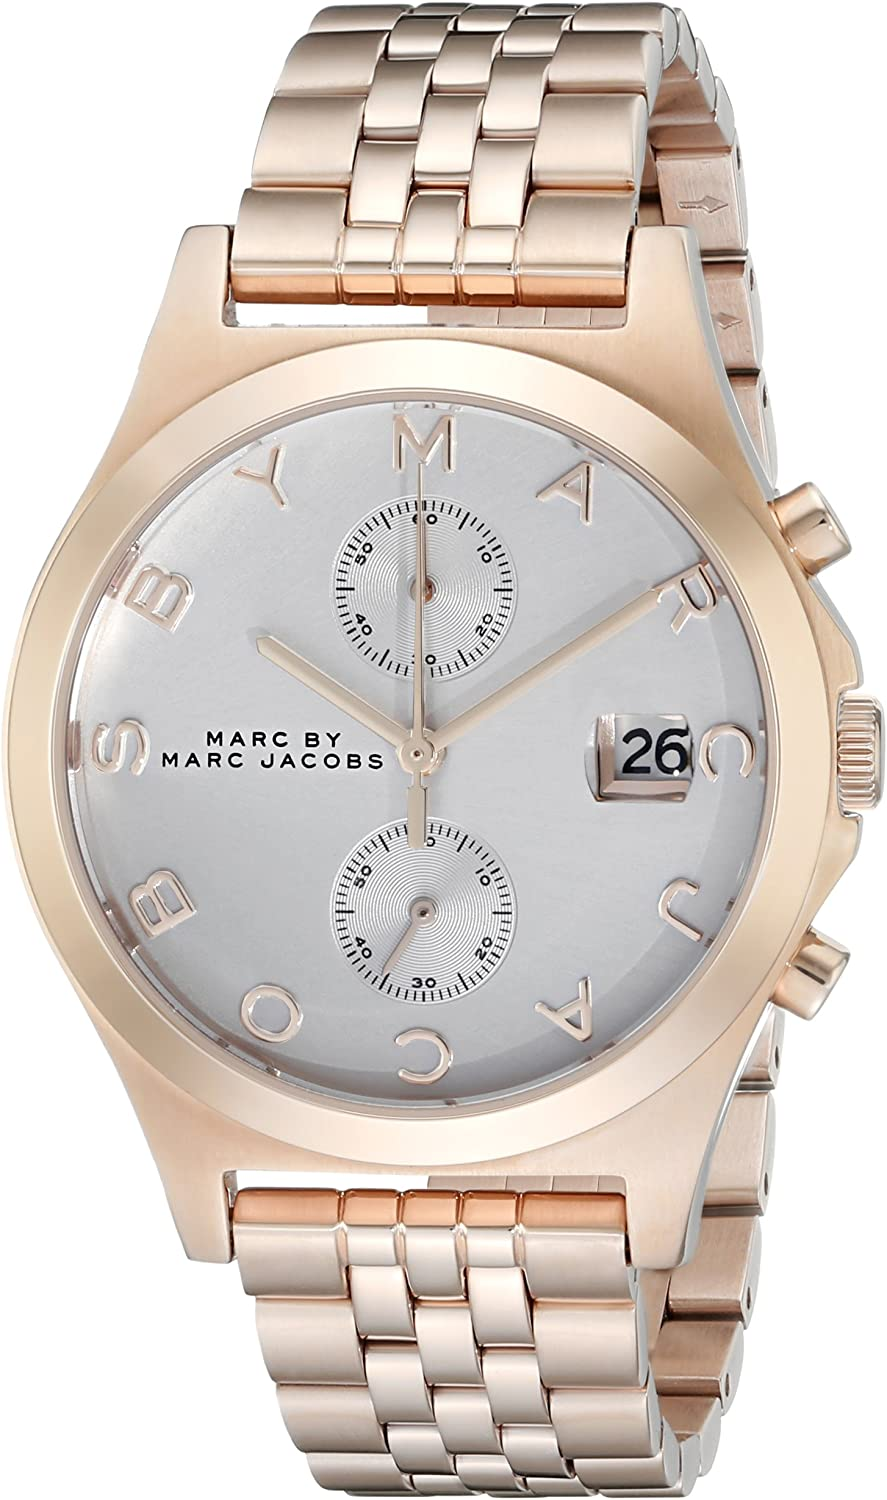 Marc by Marc Jacobs Women's MBM3380 Rose Gold-Tone Stainless Steel Bracelet Watch